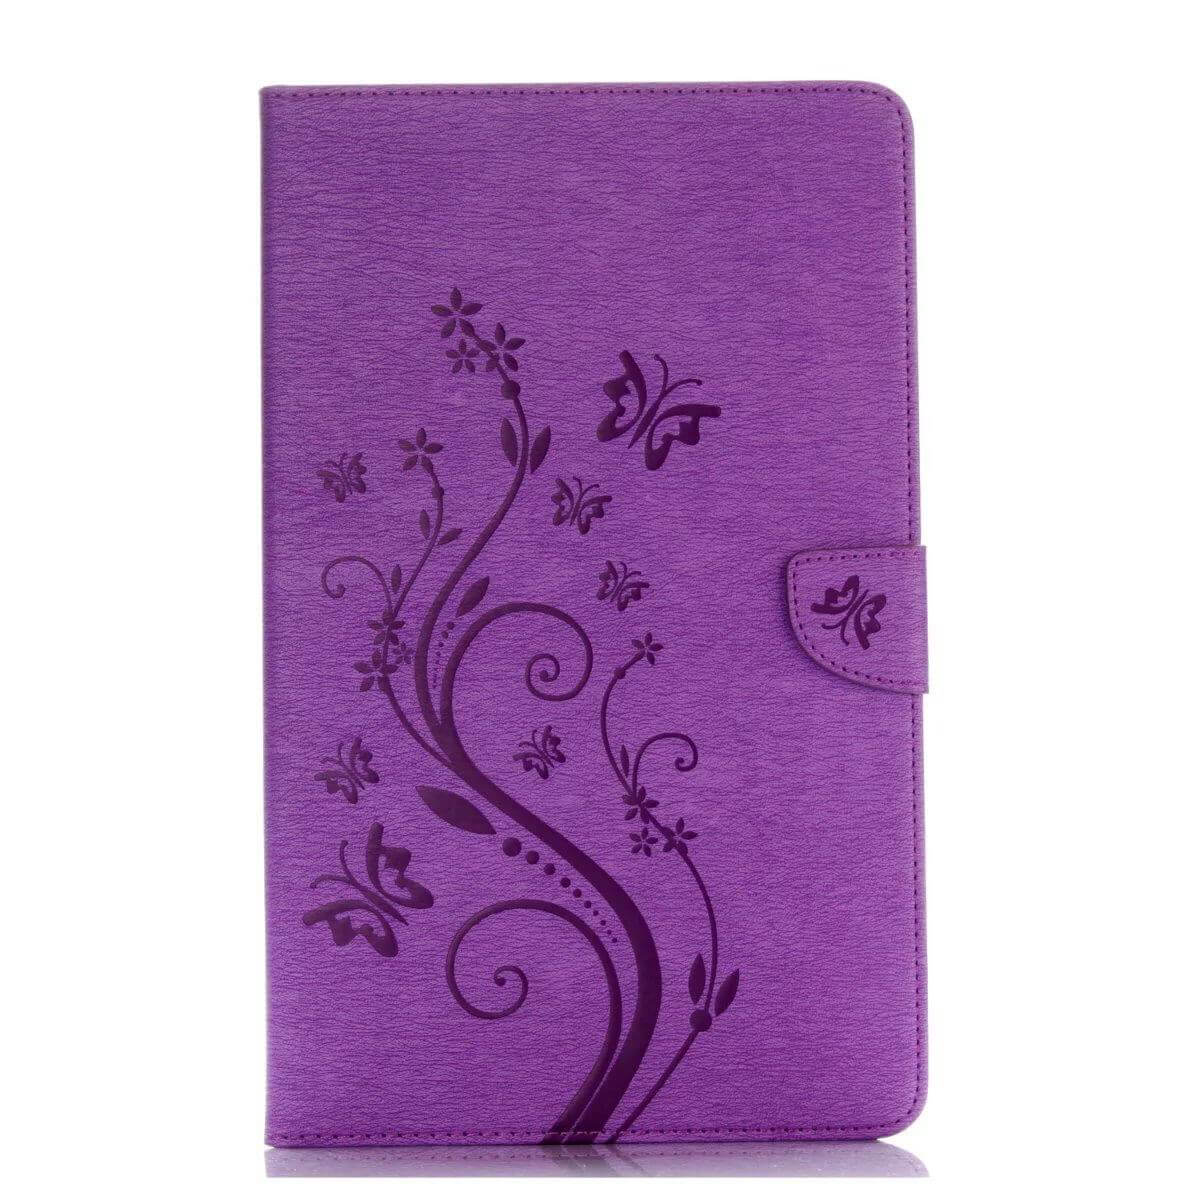 galaxy tab a 10 1 s pen 2016 business multicolor case with monochrome flowers 2 stand and credit card pockets Purple: